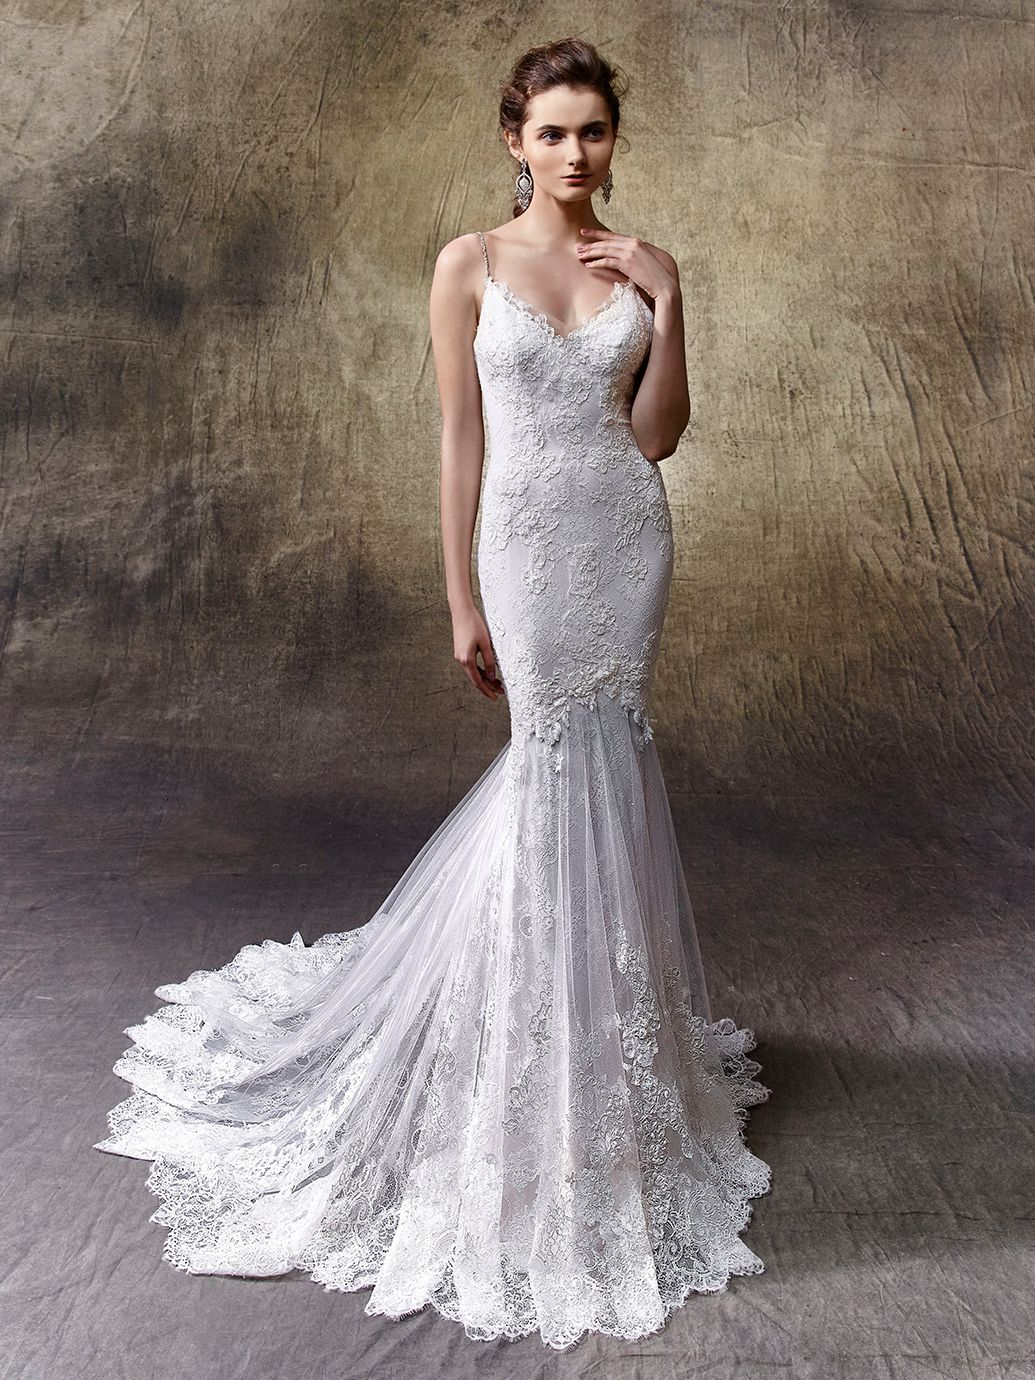 2017 enzoani lexi front view i love the lace and the total 2017 enzoani lexi front view i love the lace and the total silhouette on ombrellifo Images